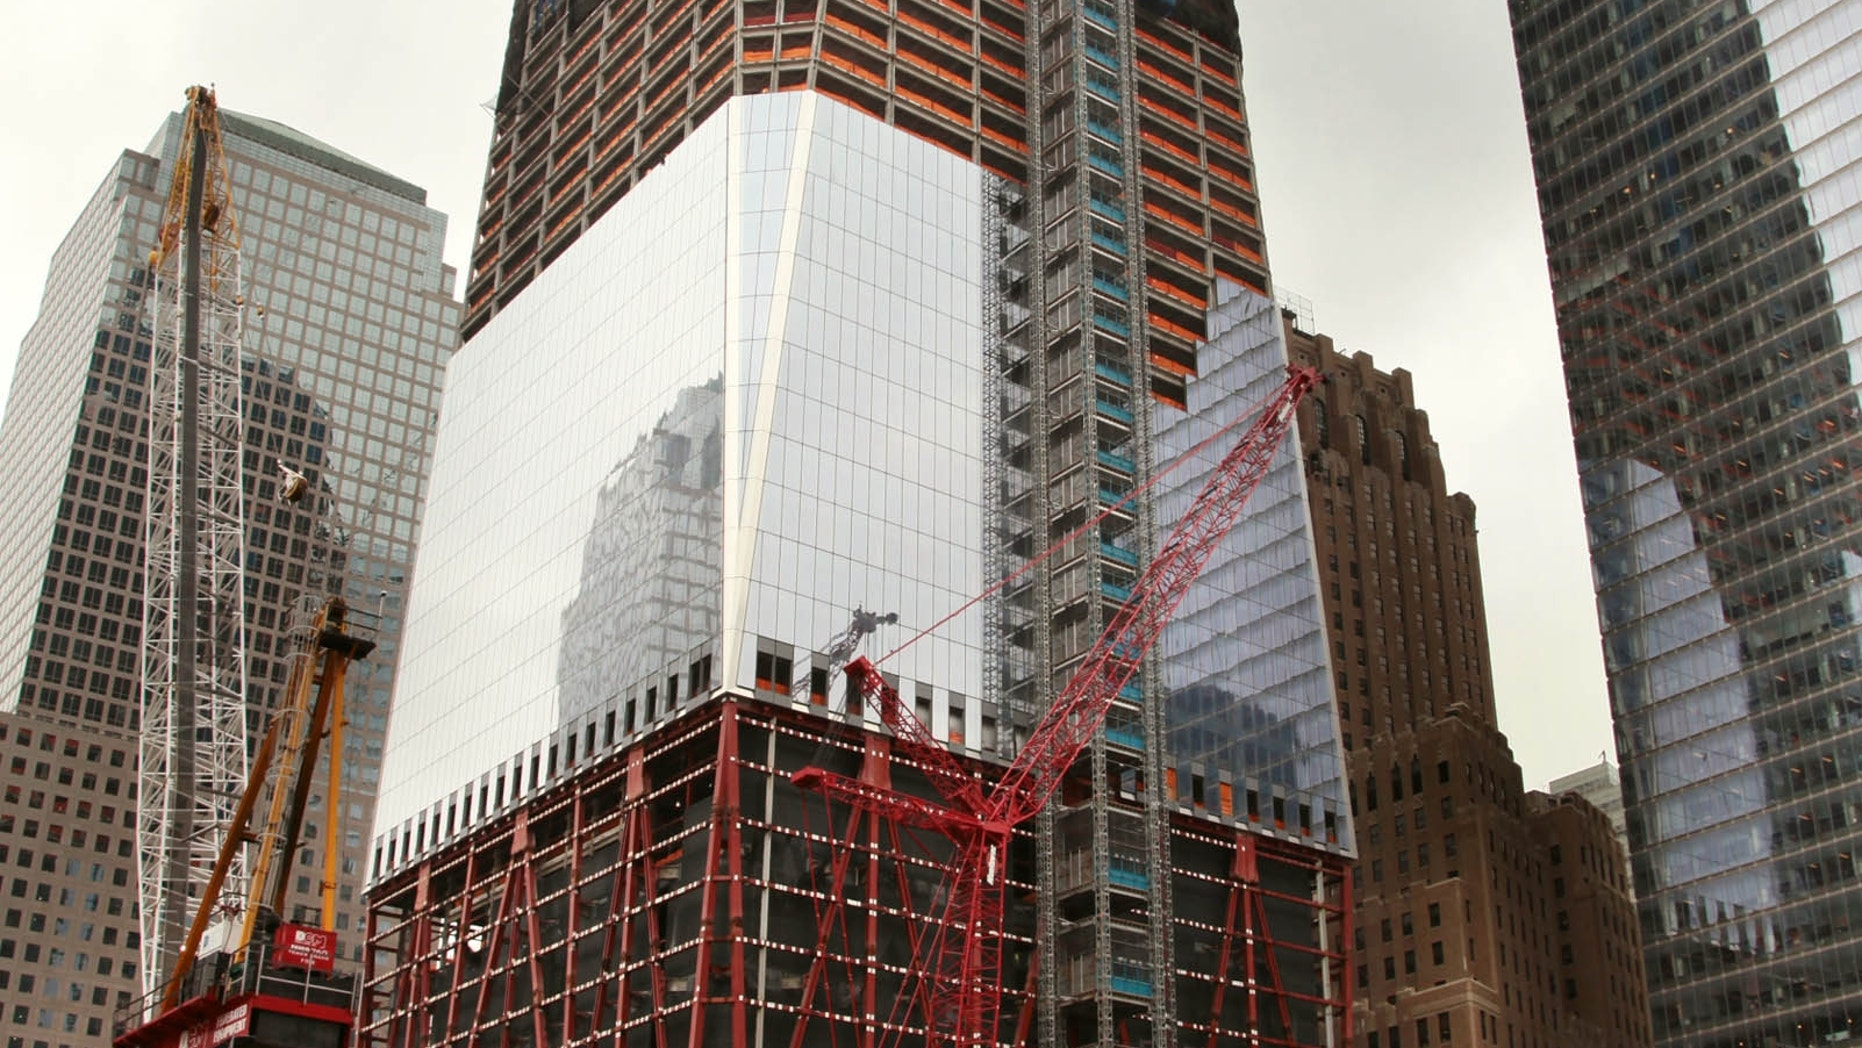 Image of construction on Tower 1 in downtown Manhattan. 7 World Trade Center is on the right.